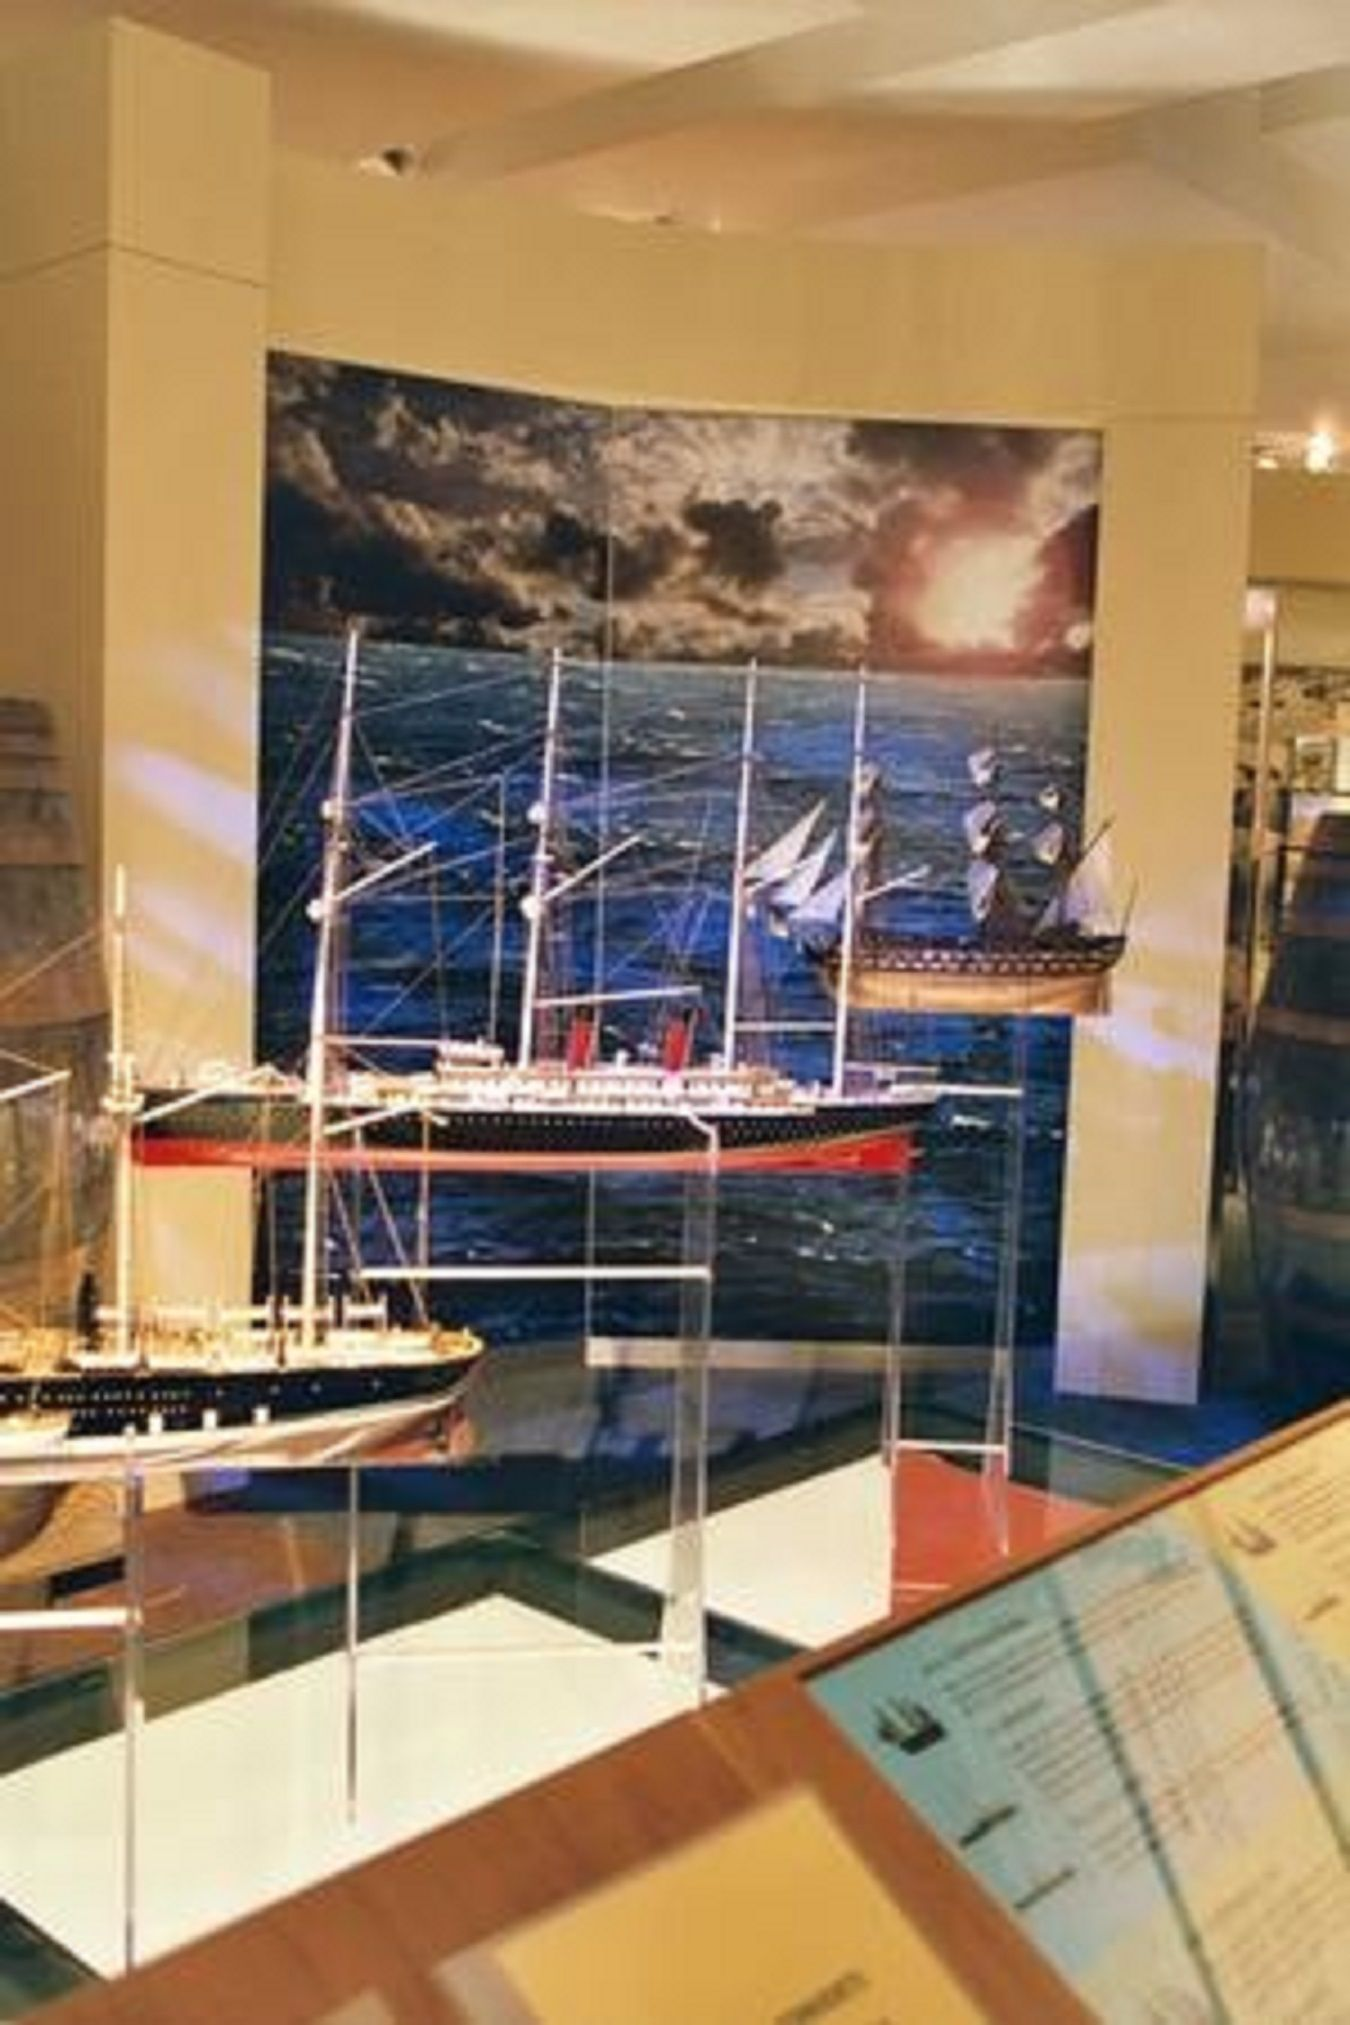 220-7503-La-Normandie-model-ship-Premier-Range